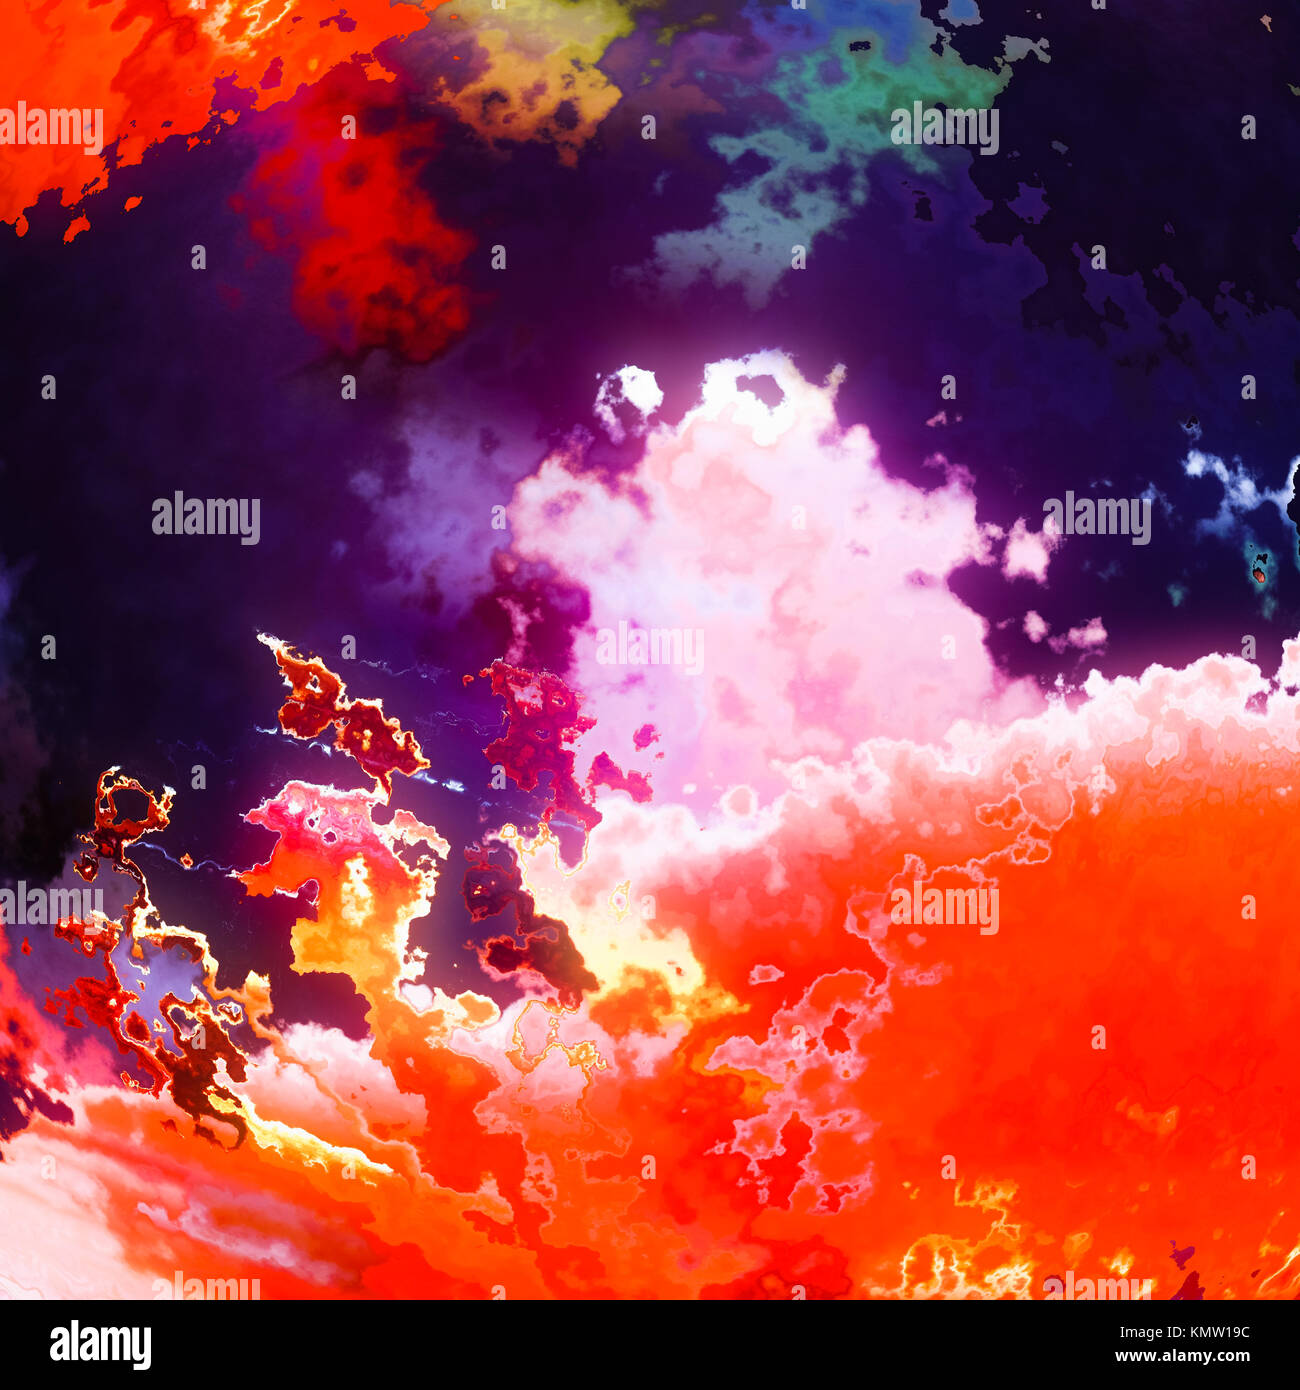 Burning flame clouds, red abstract background illustration Stock Photo